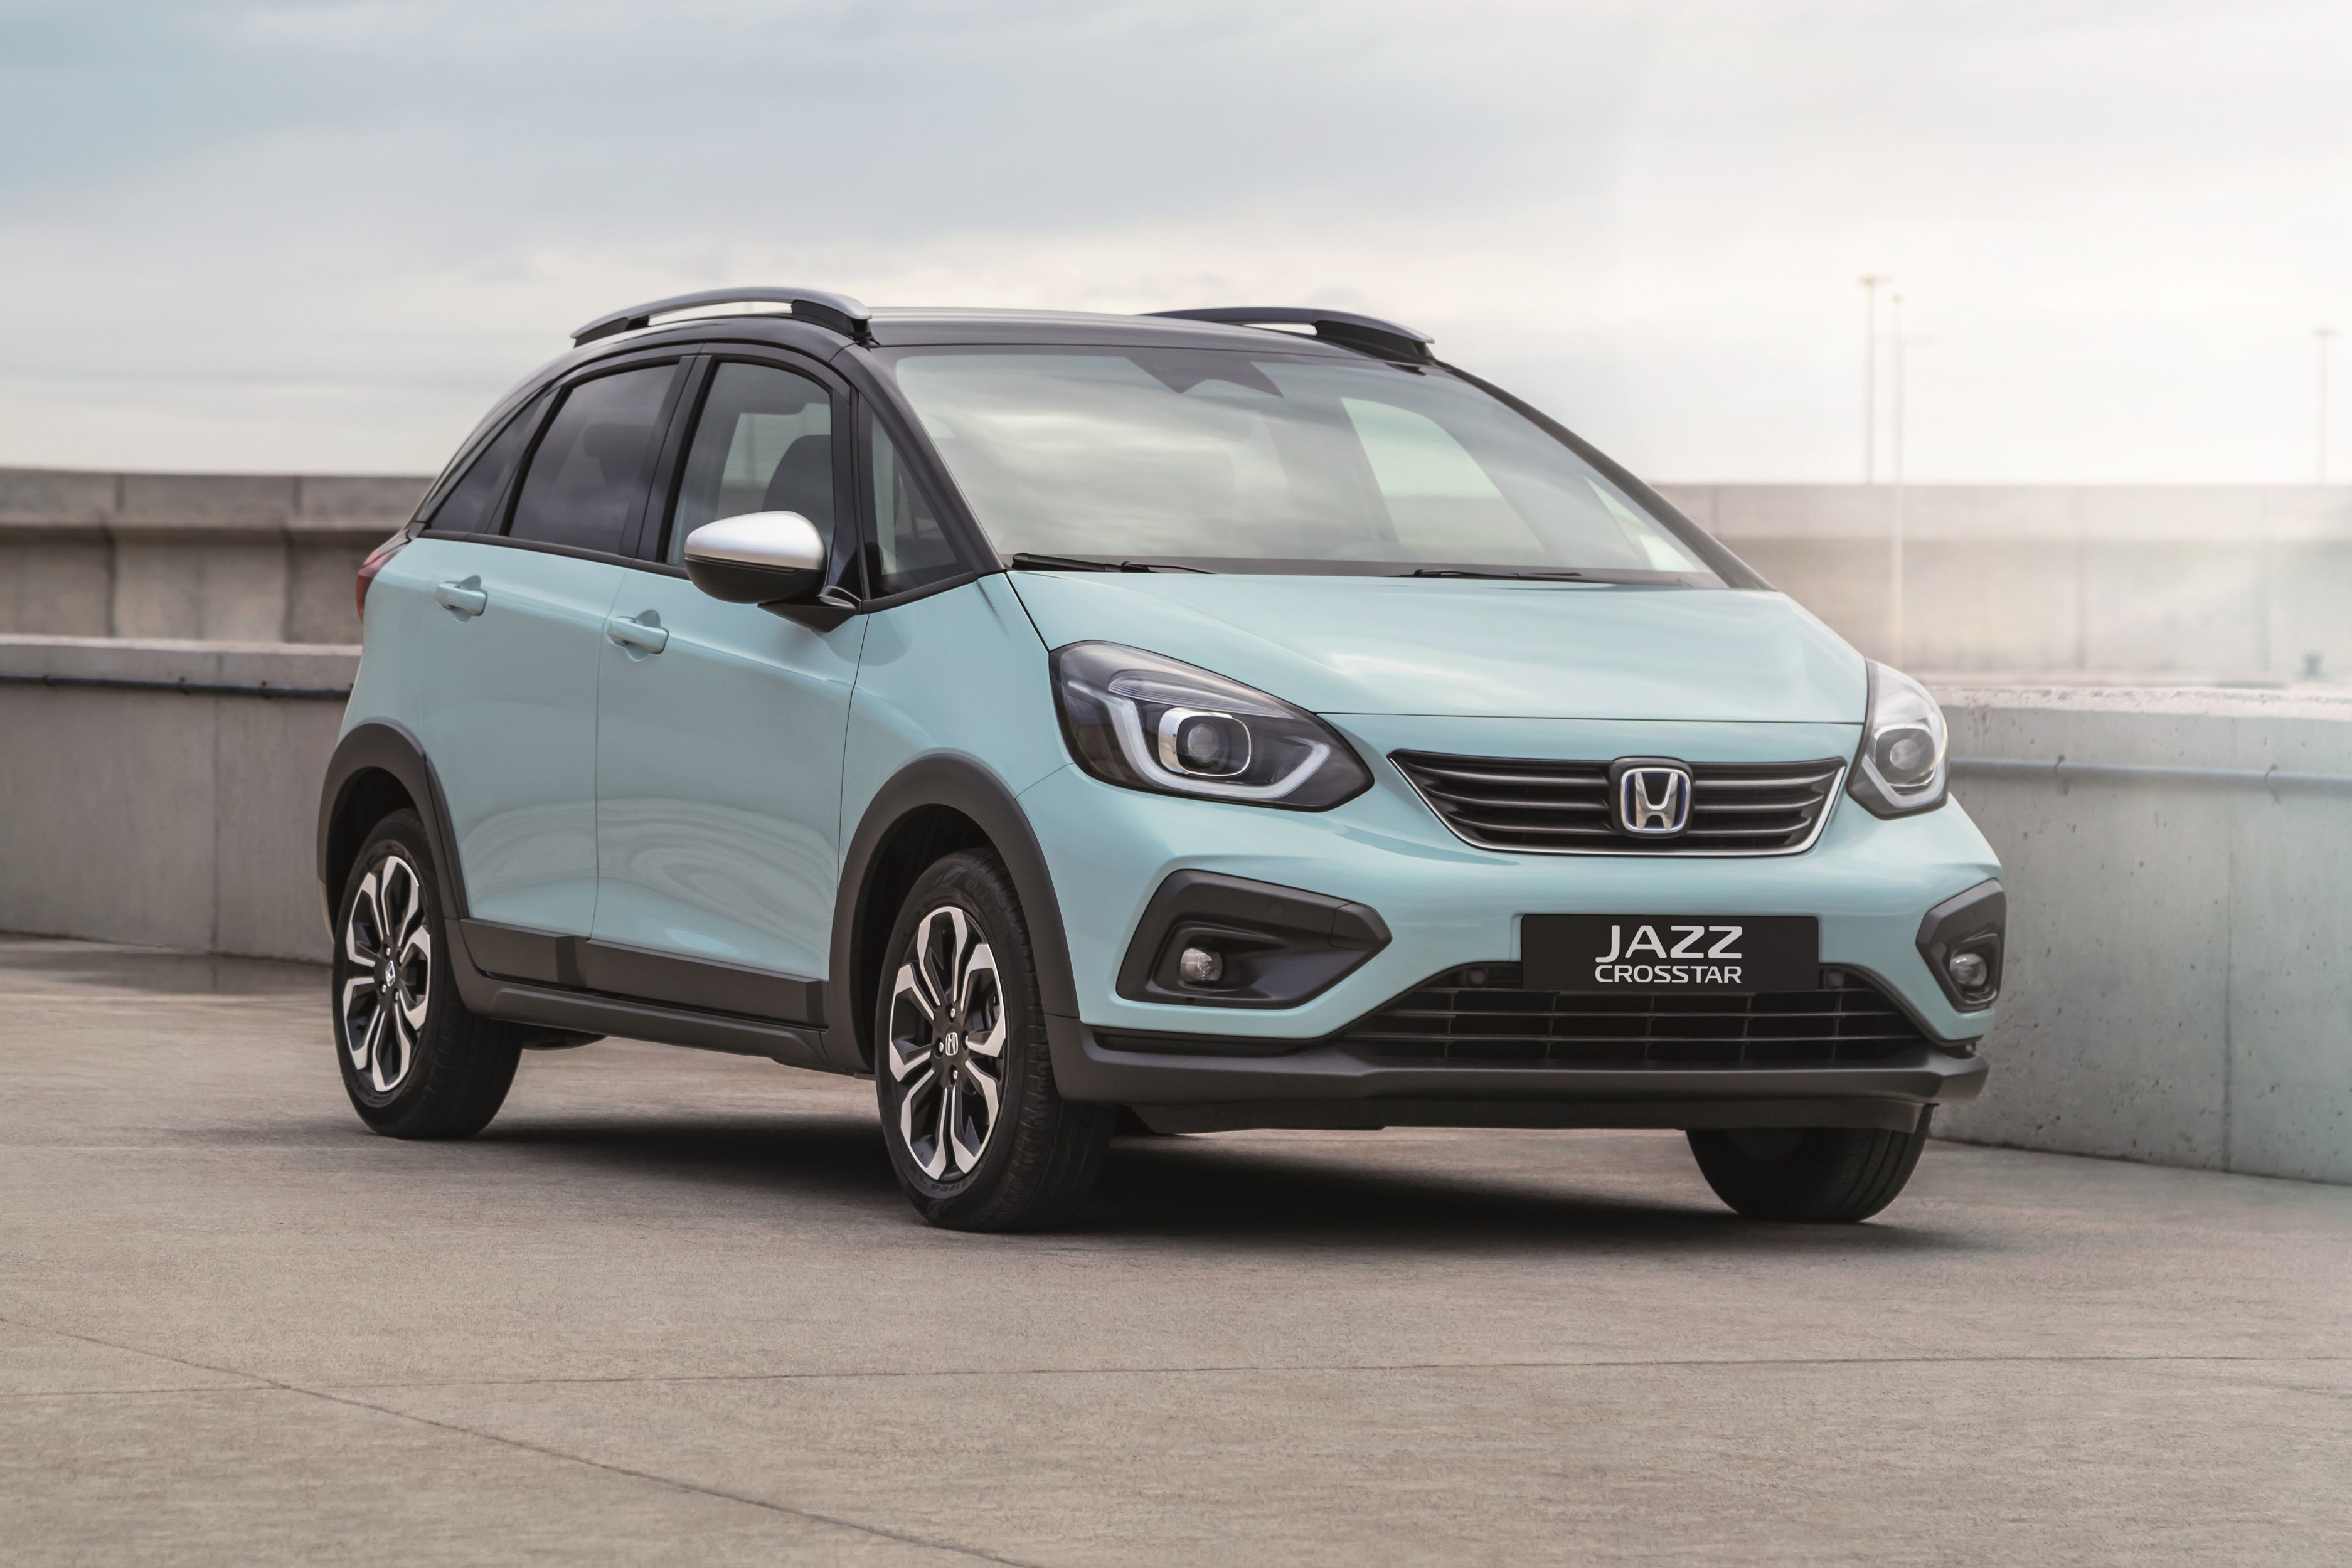 New 2020 Honda Jazz Hybrid Prices Specs And Release Date Carbuyer